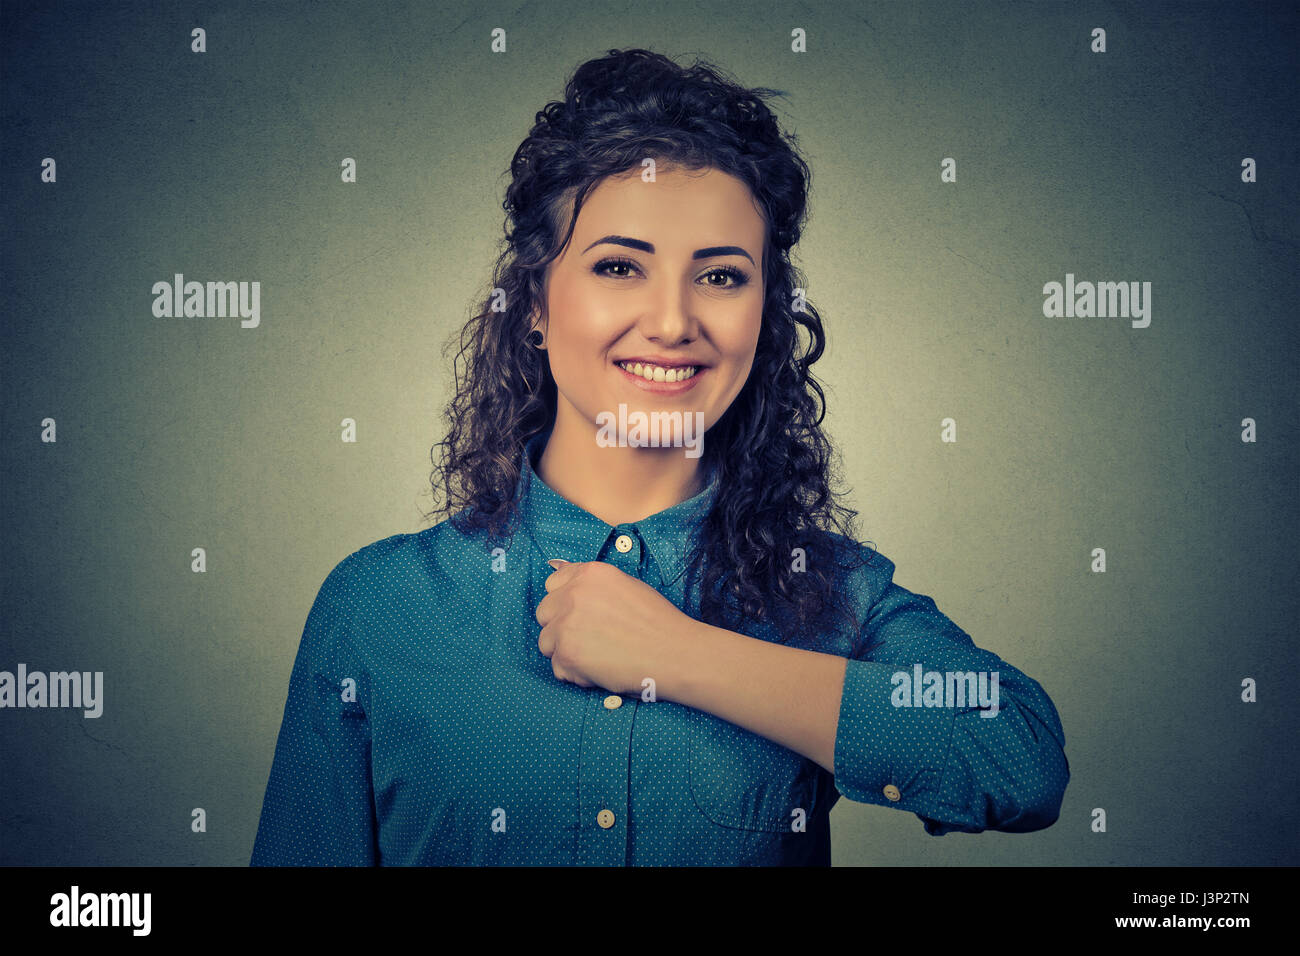 Superhero girl. Confident brave happy young woman isolated on gray wall background - Stock Image